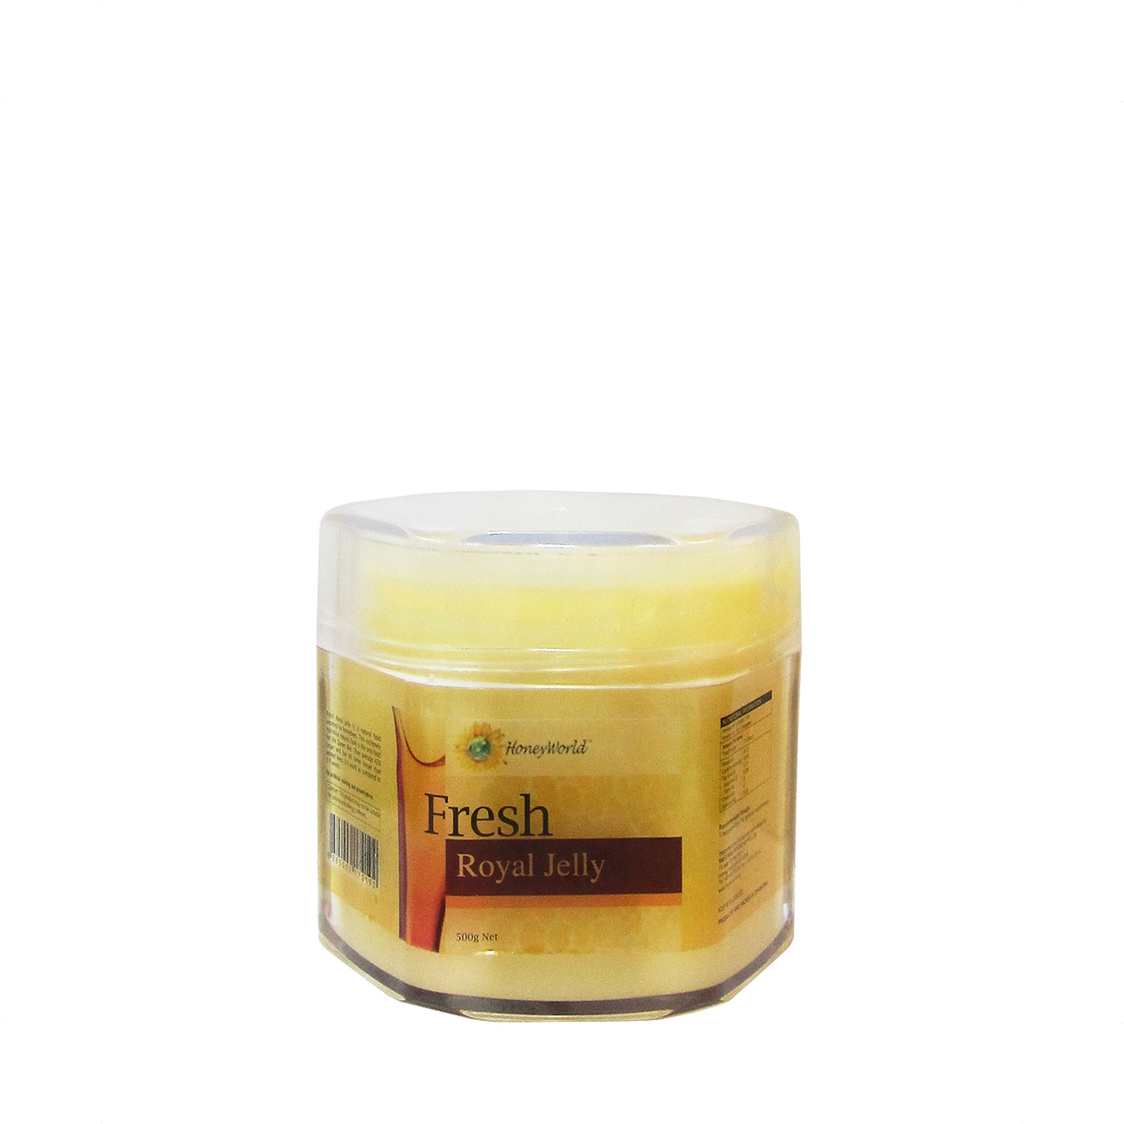 Thailand Fresh Royal Jelly 500g